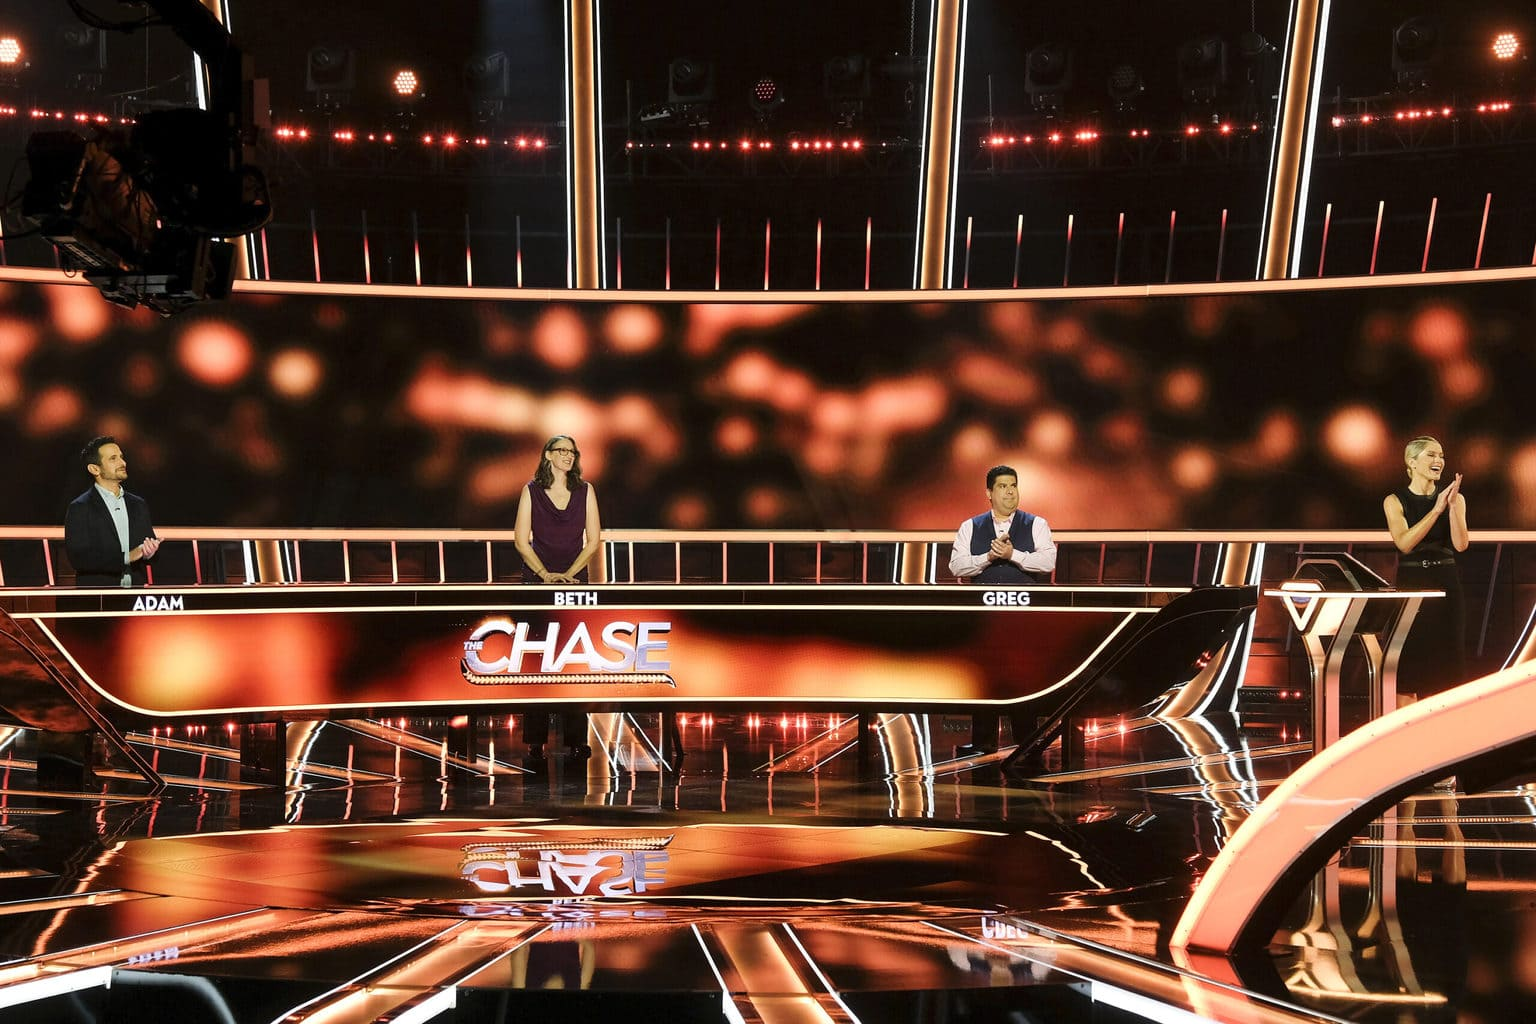 The Chase on ABC